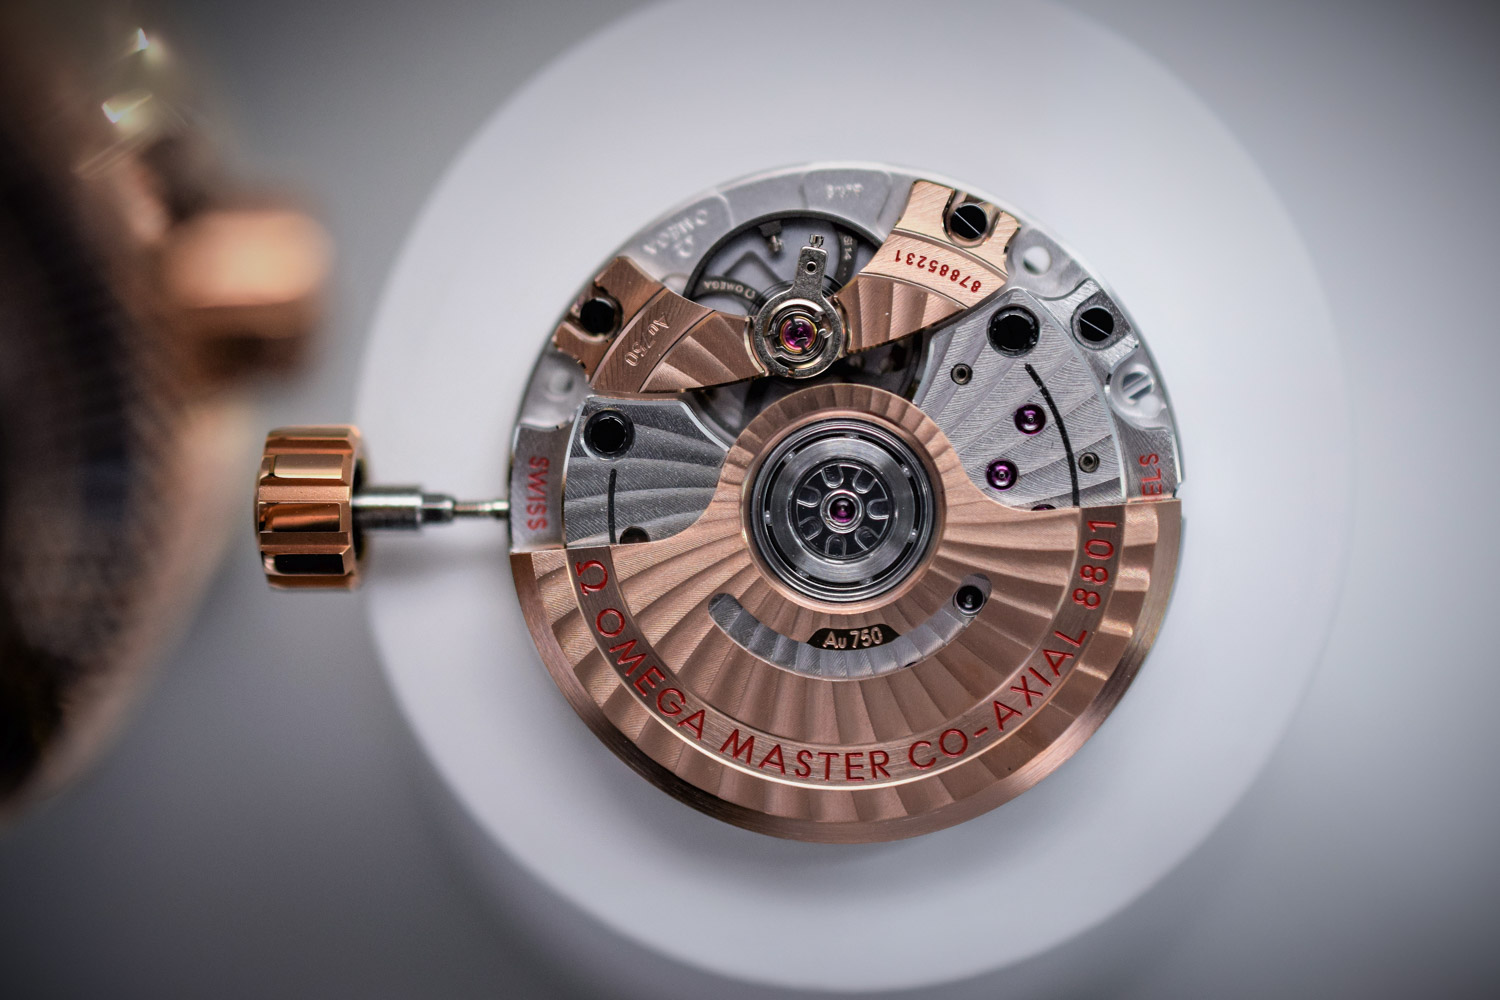 Omega Calibre Master Chronometer Co-Axial 8801